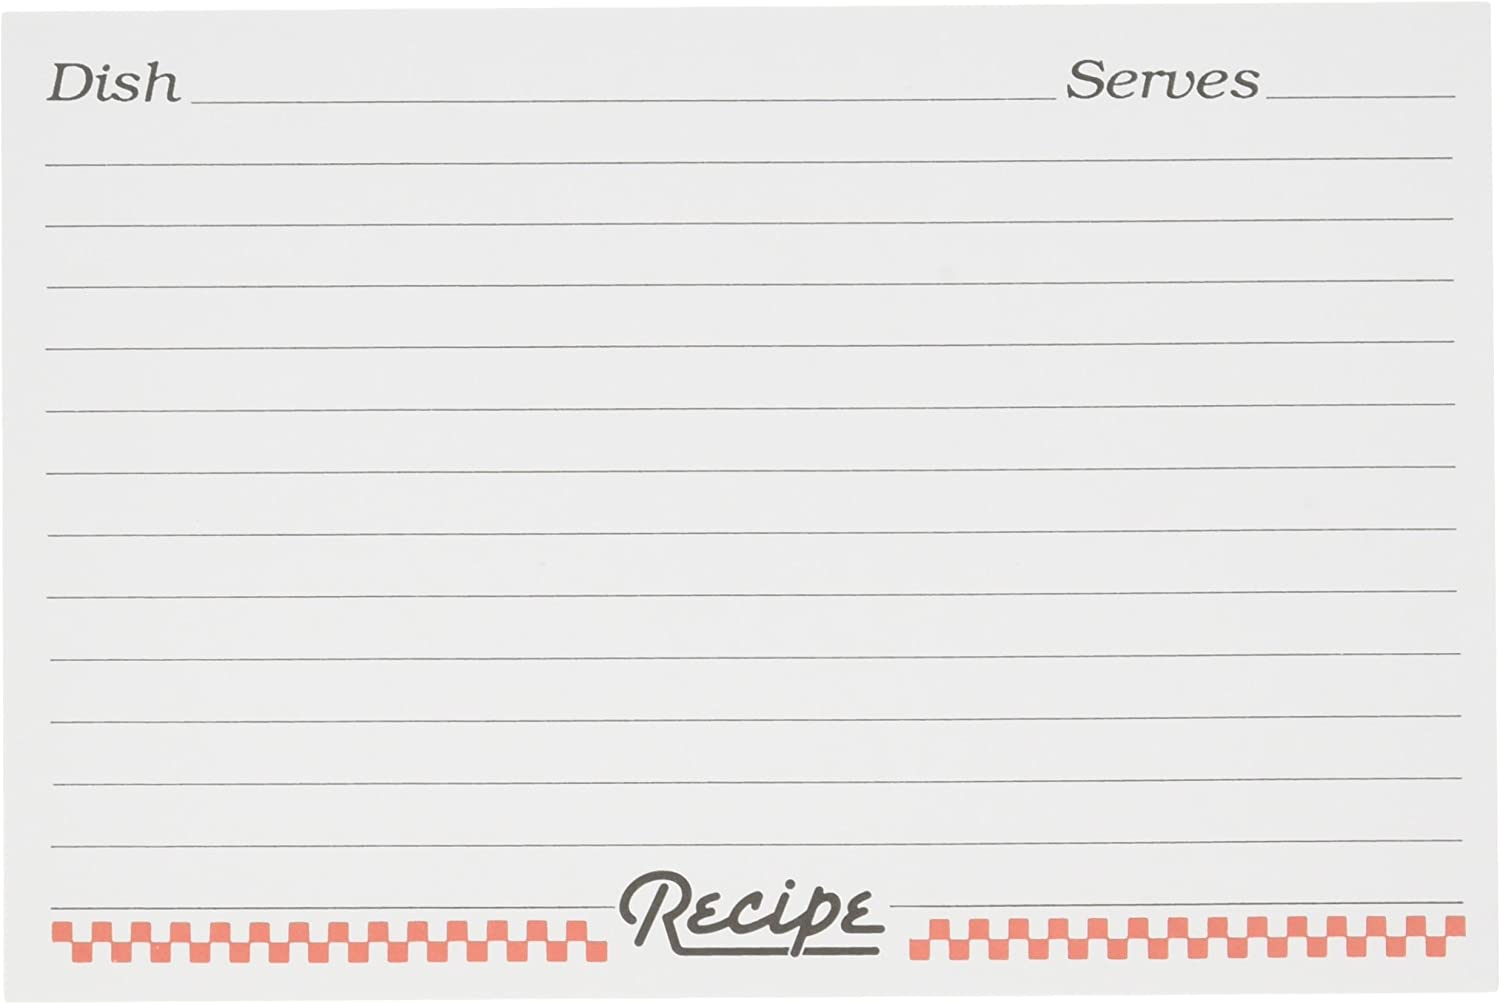 Set of 24 Weatherbee Preprinted Recipe Card Tab Dividers Set 4 by 6-Inches